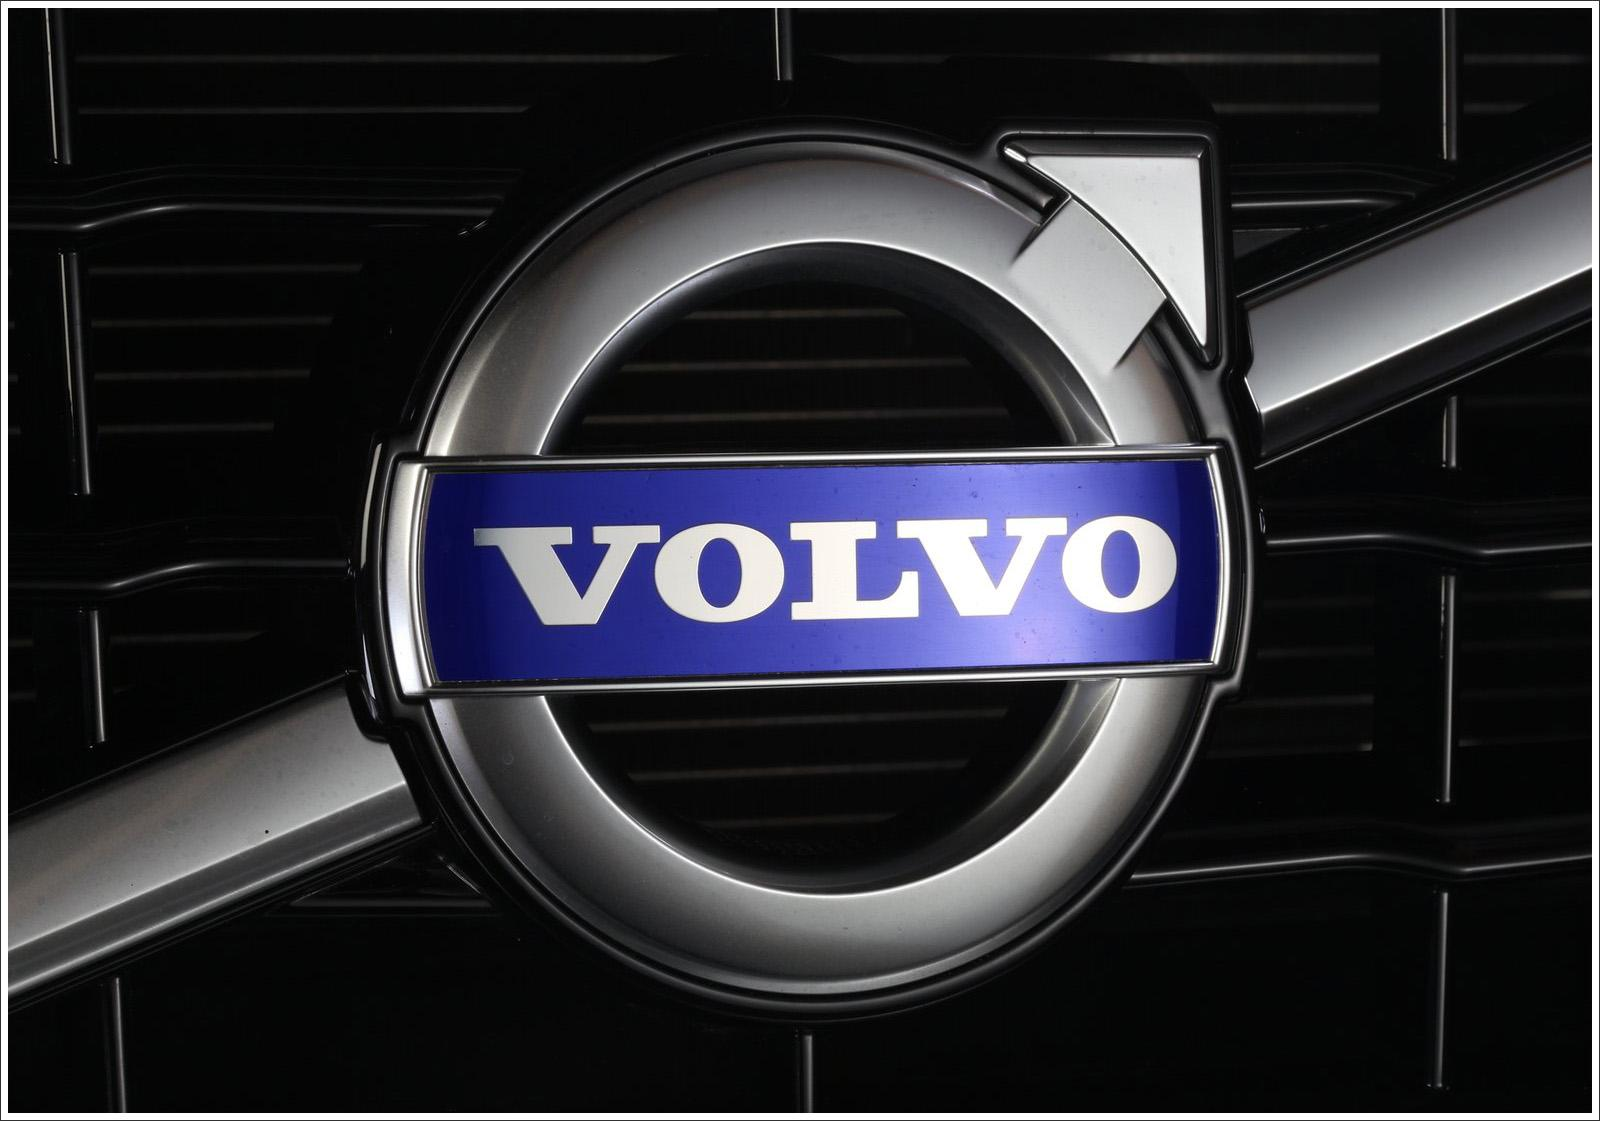 Volvo Wallpapers HD Backgrounds, Image, Pics, Photos Free Download